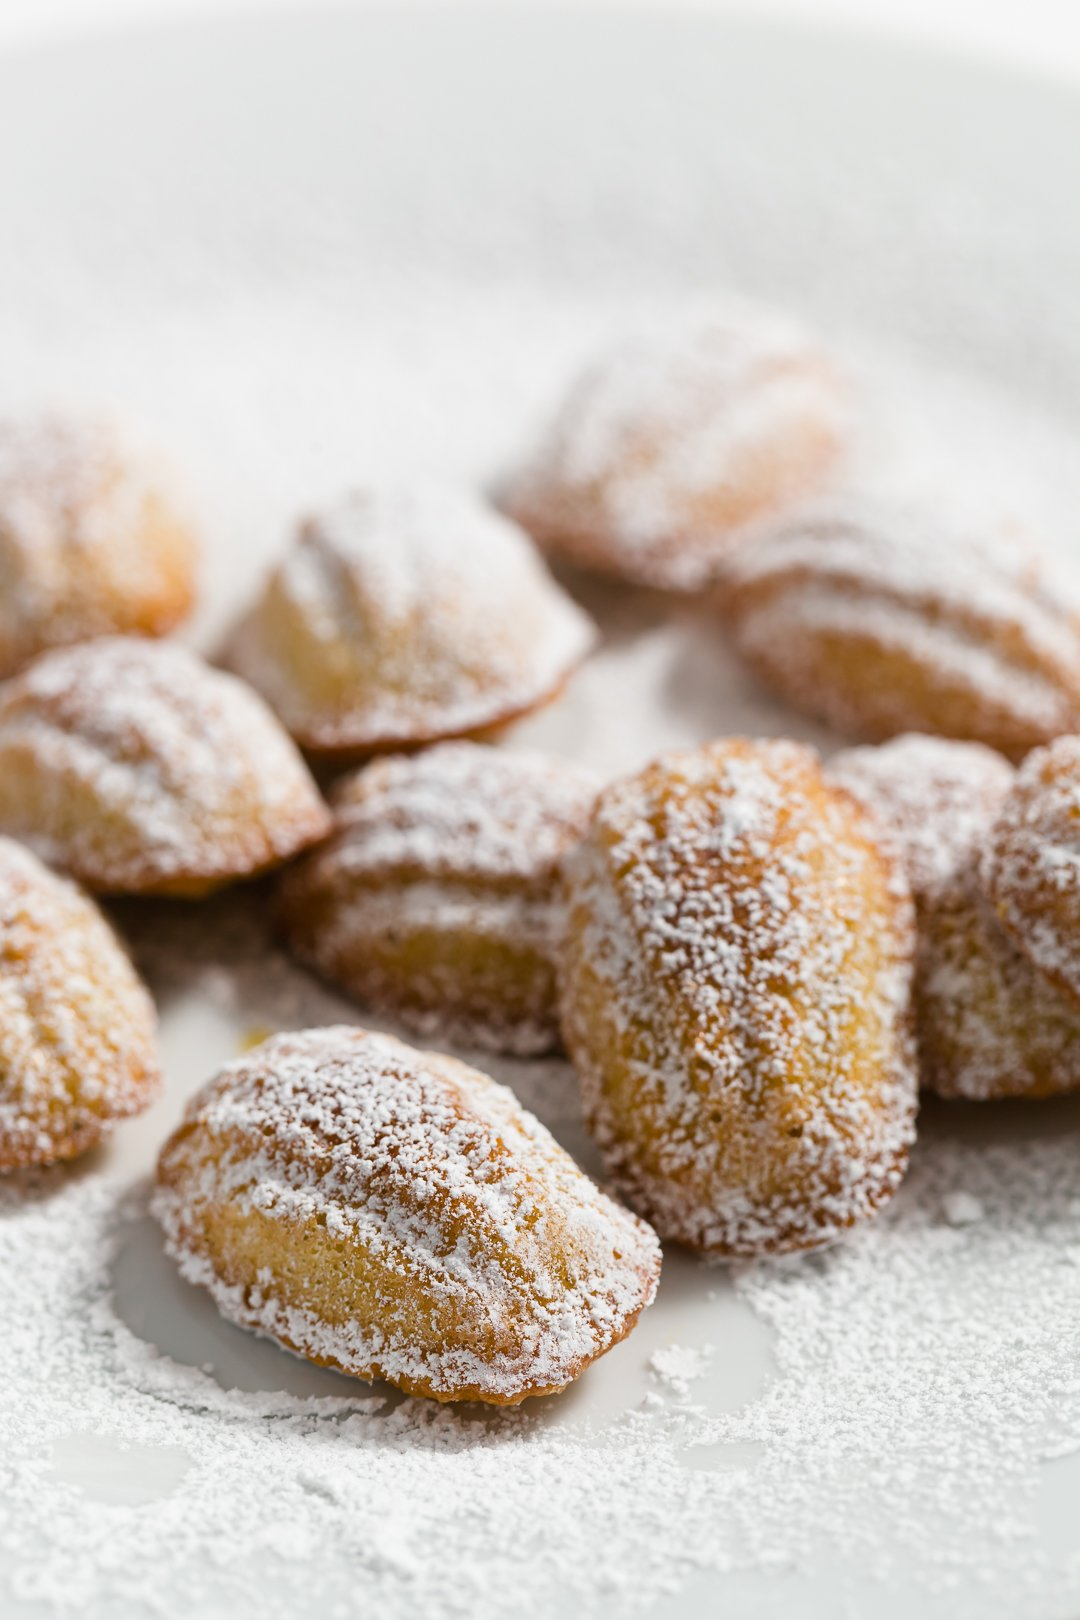 Mini Madeleines dusted with powdered sugar